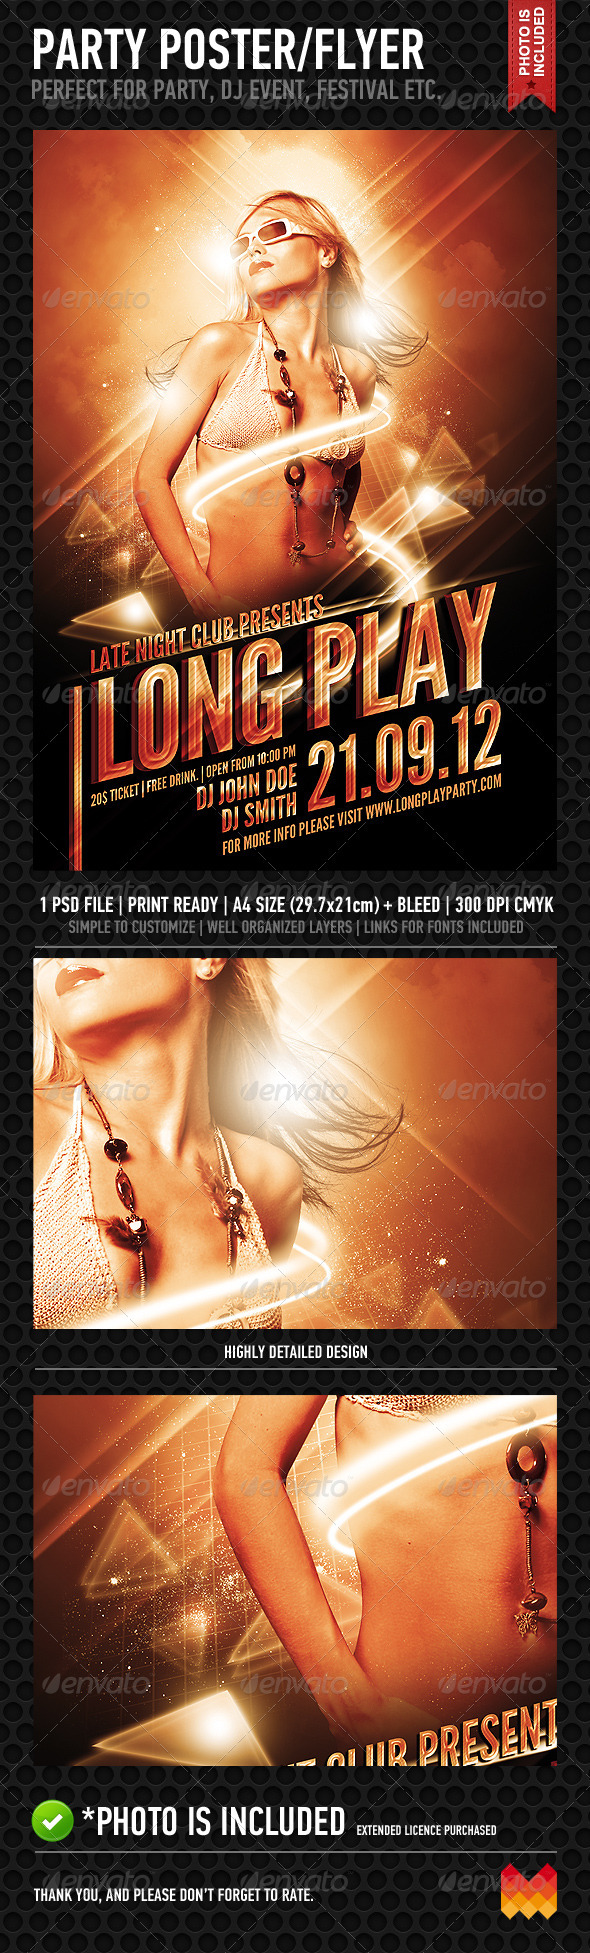 Long Play Party Poster/Flyer - Clubs & Parties Events